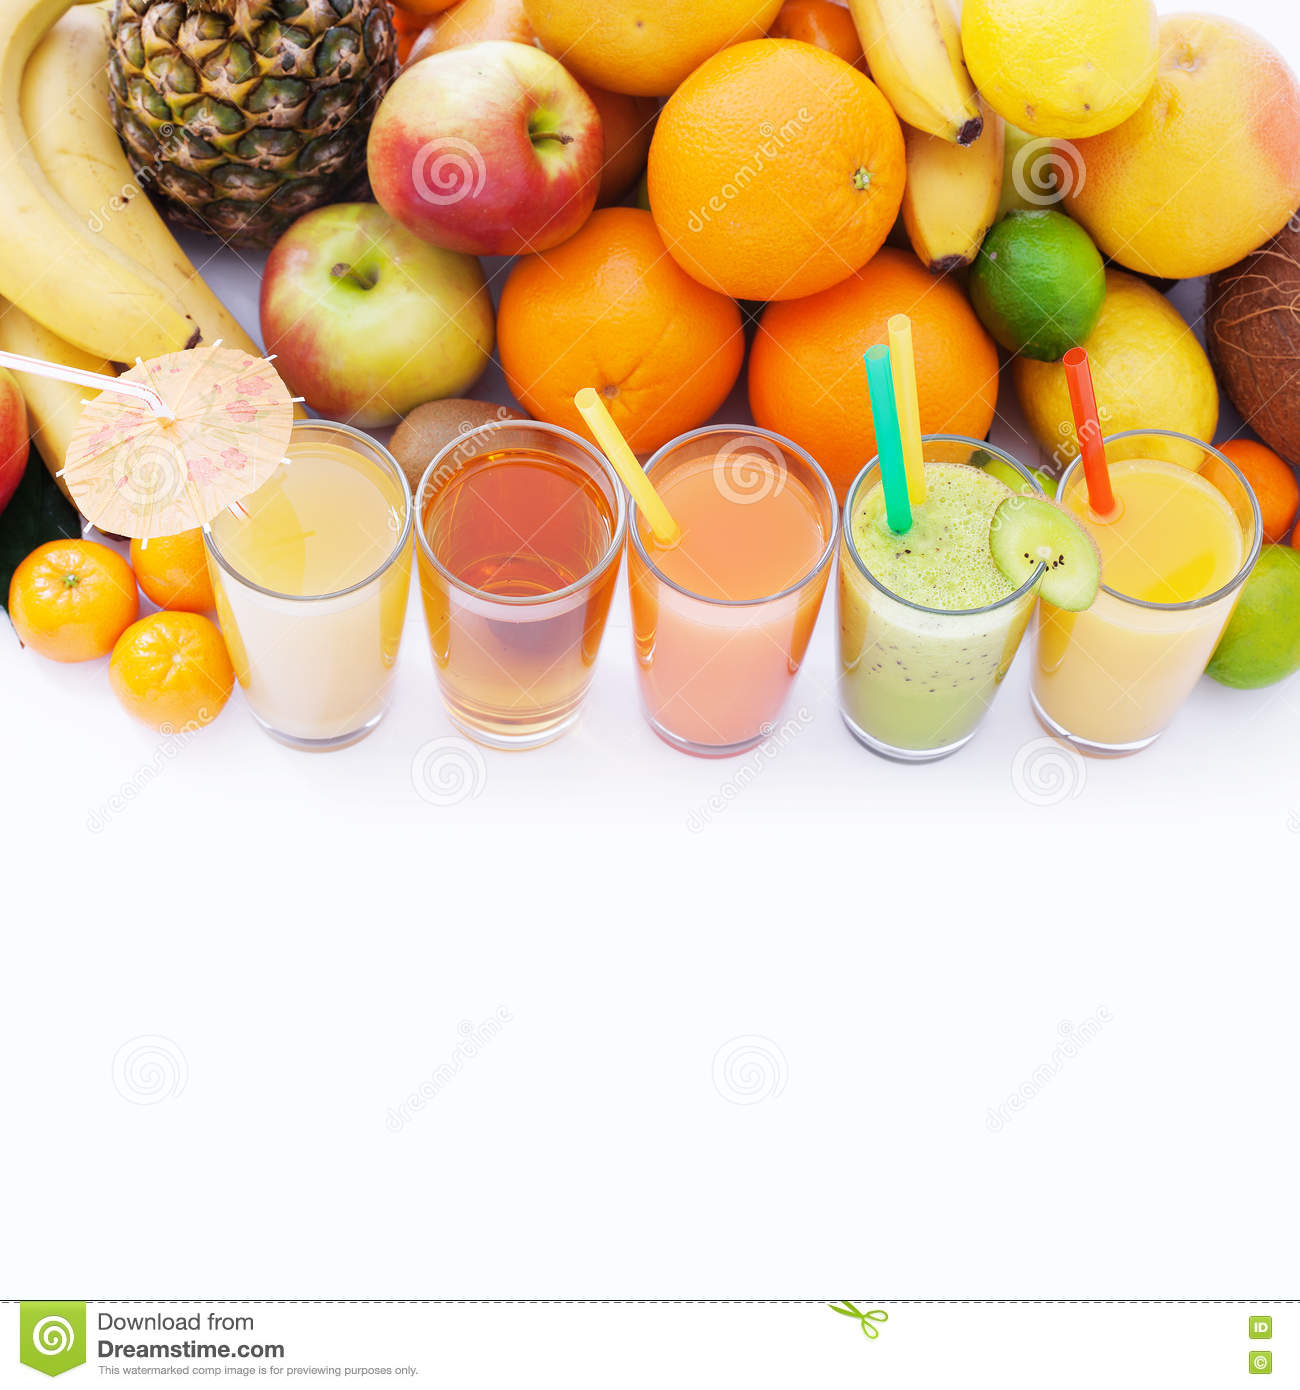 How To Make All Natural Sports Drinks